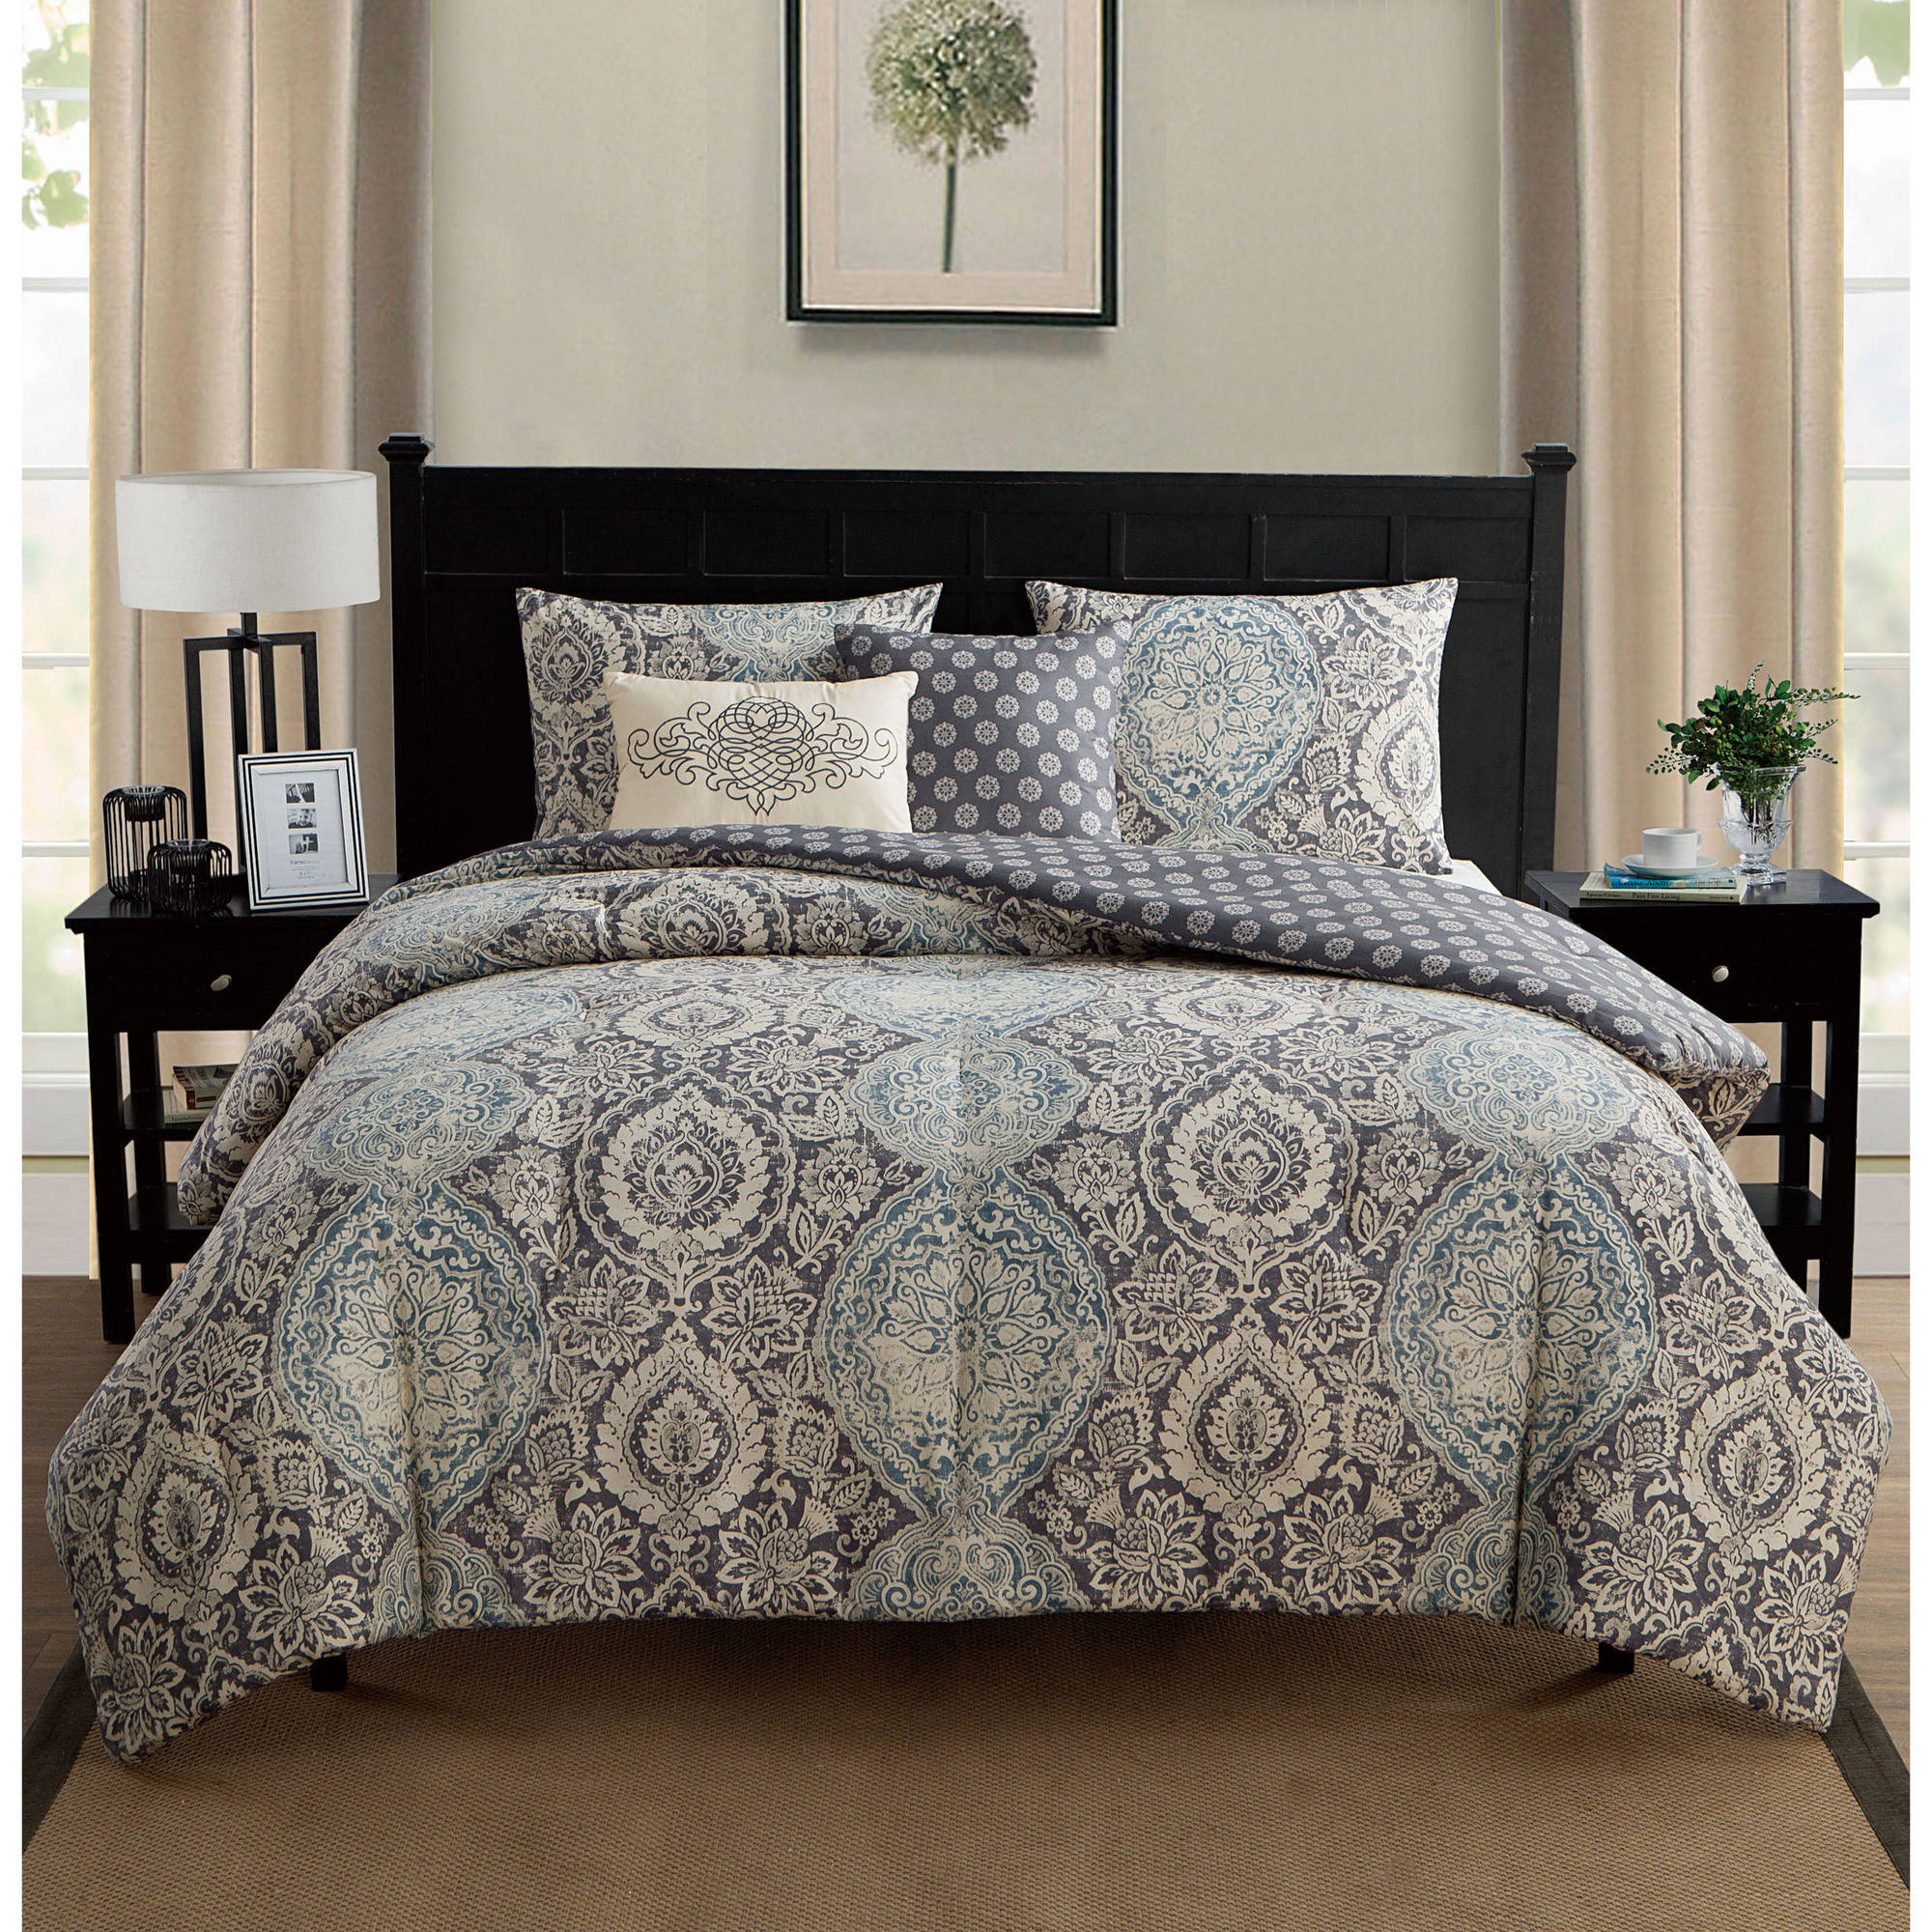 VCNY Home Victoria Floral Medallion 5-Piece Reversible Bedding Comforter Set with Decorative Pillows